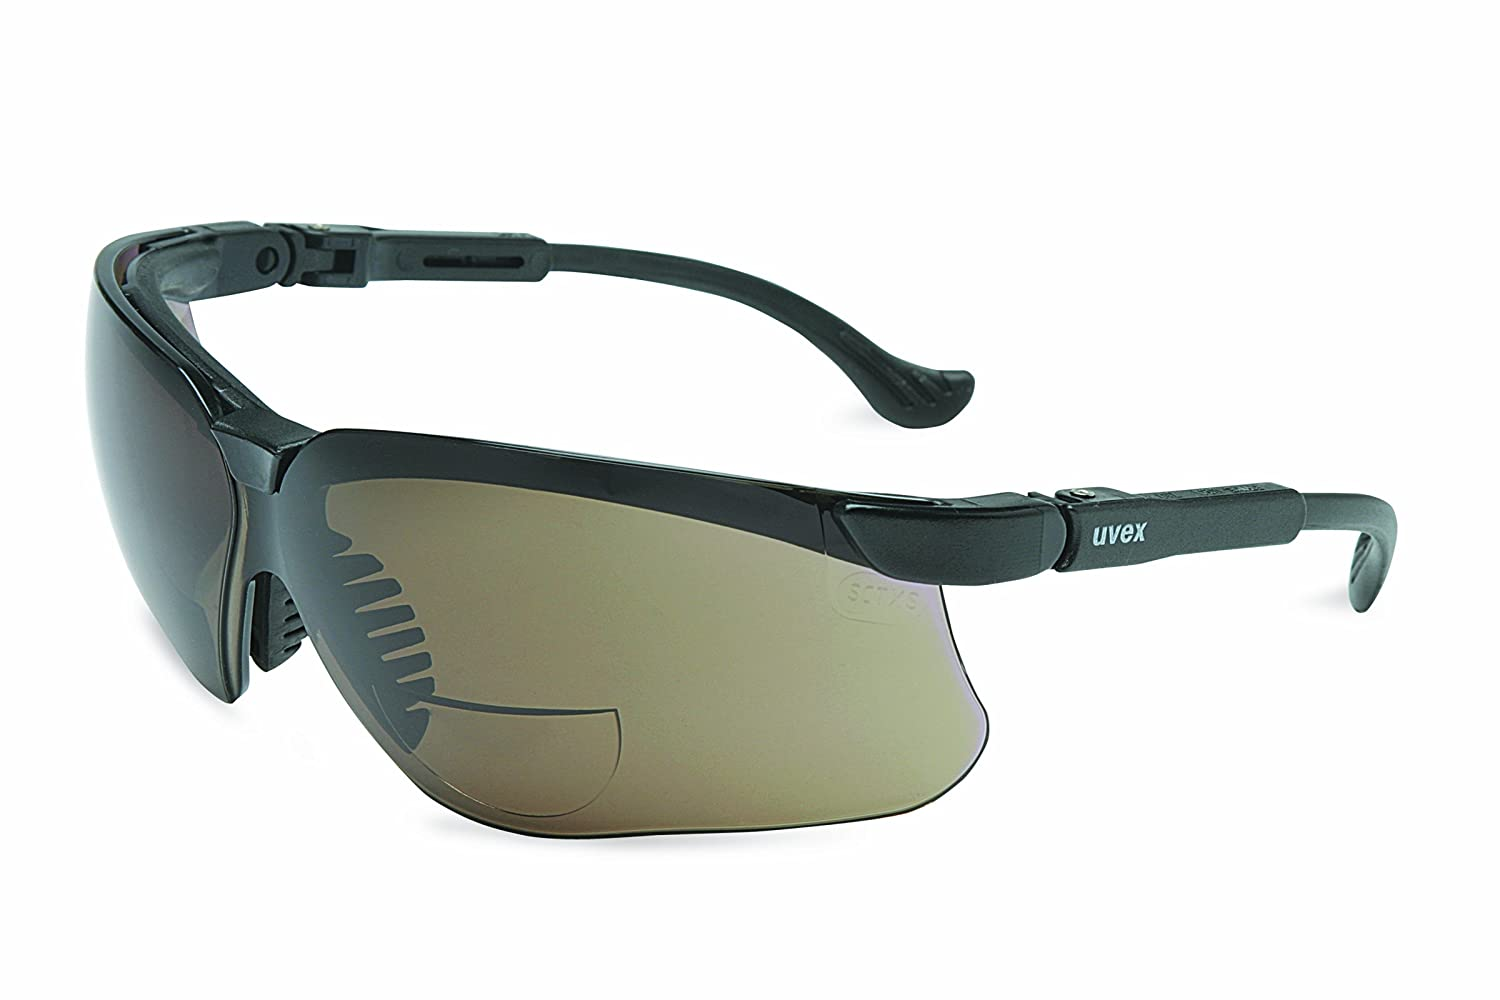 5ed8879231ac Uvex S3771 Genesis Reading Magnifiers Safety Eyewear +1-1 2